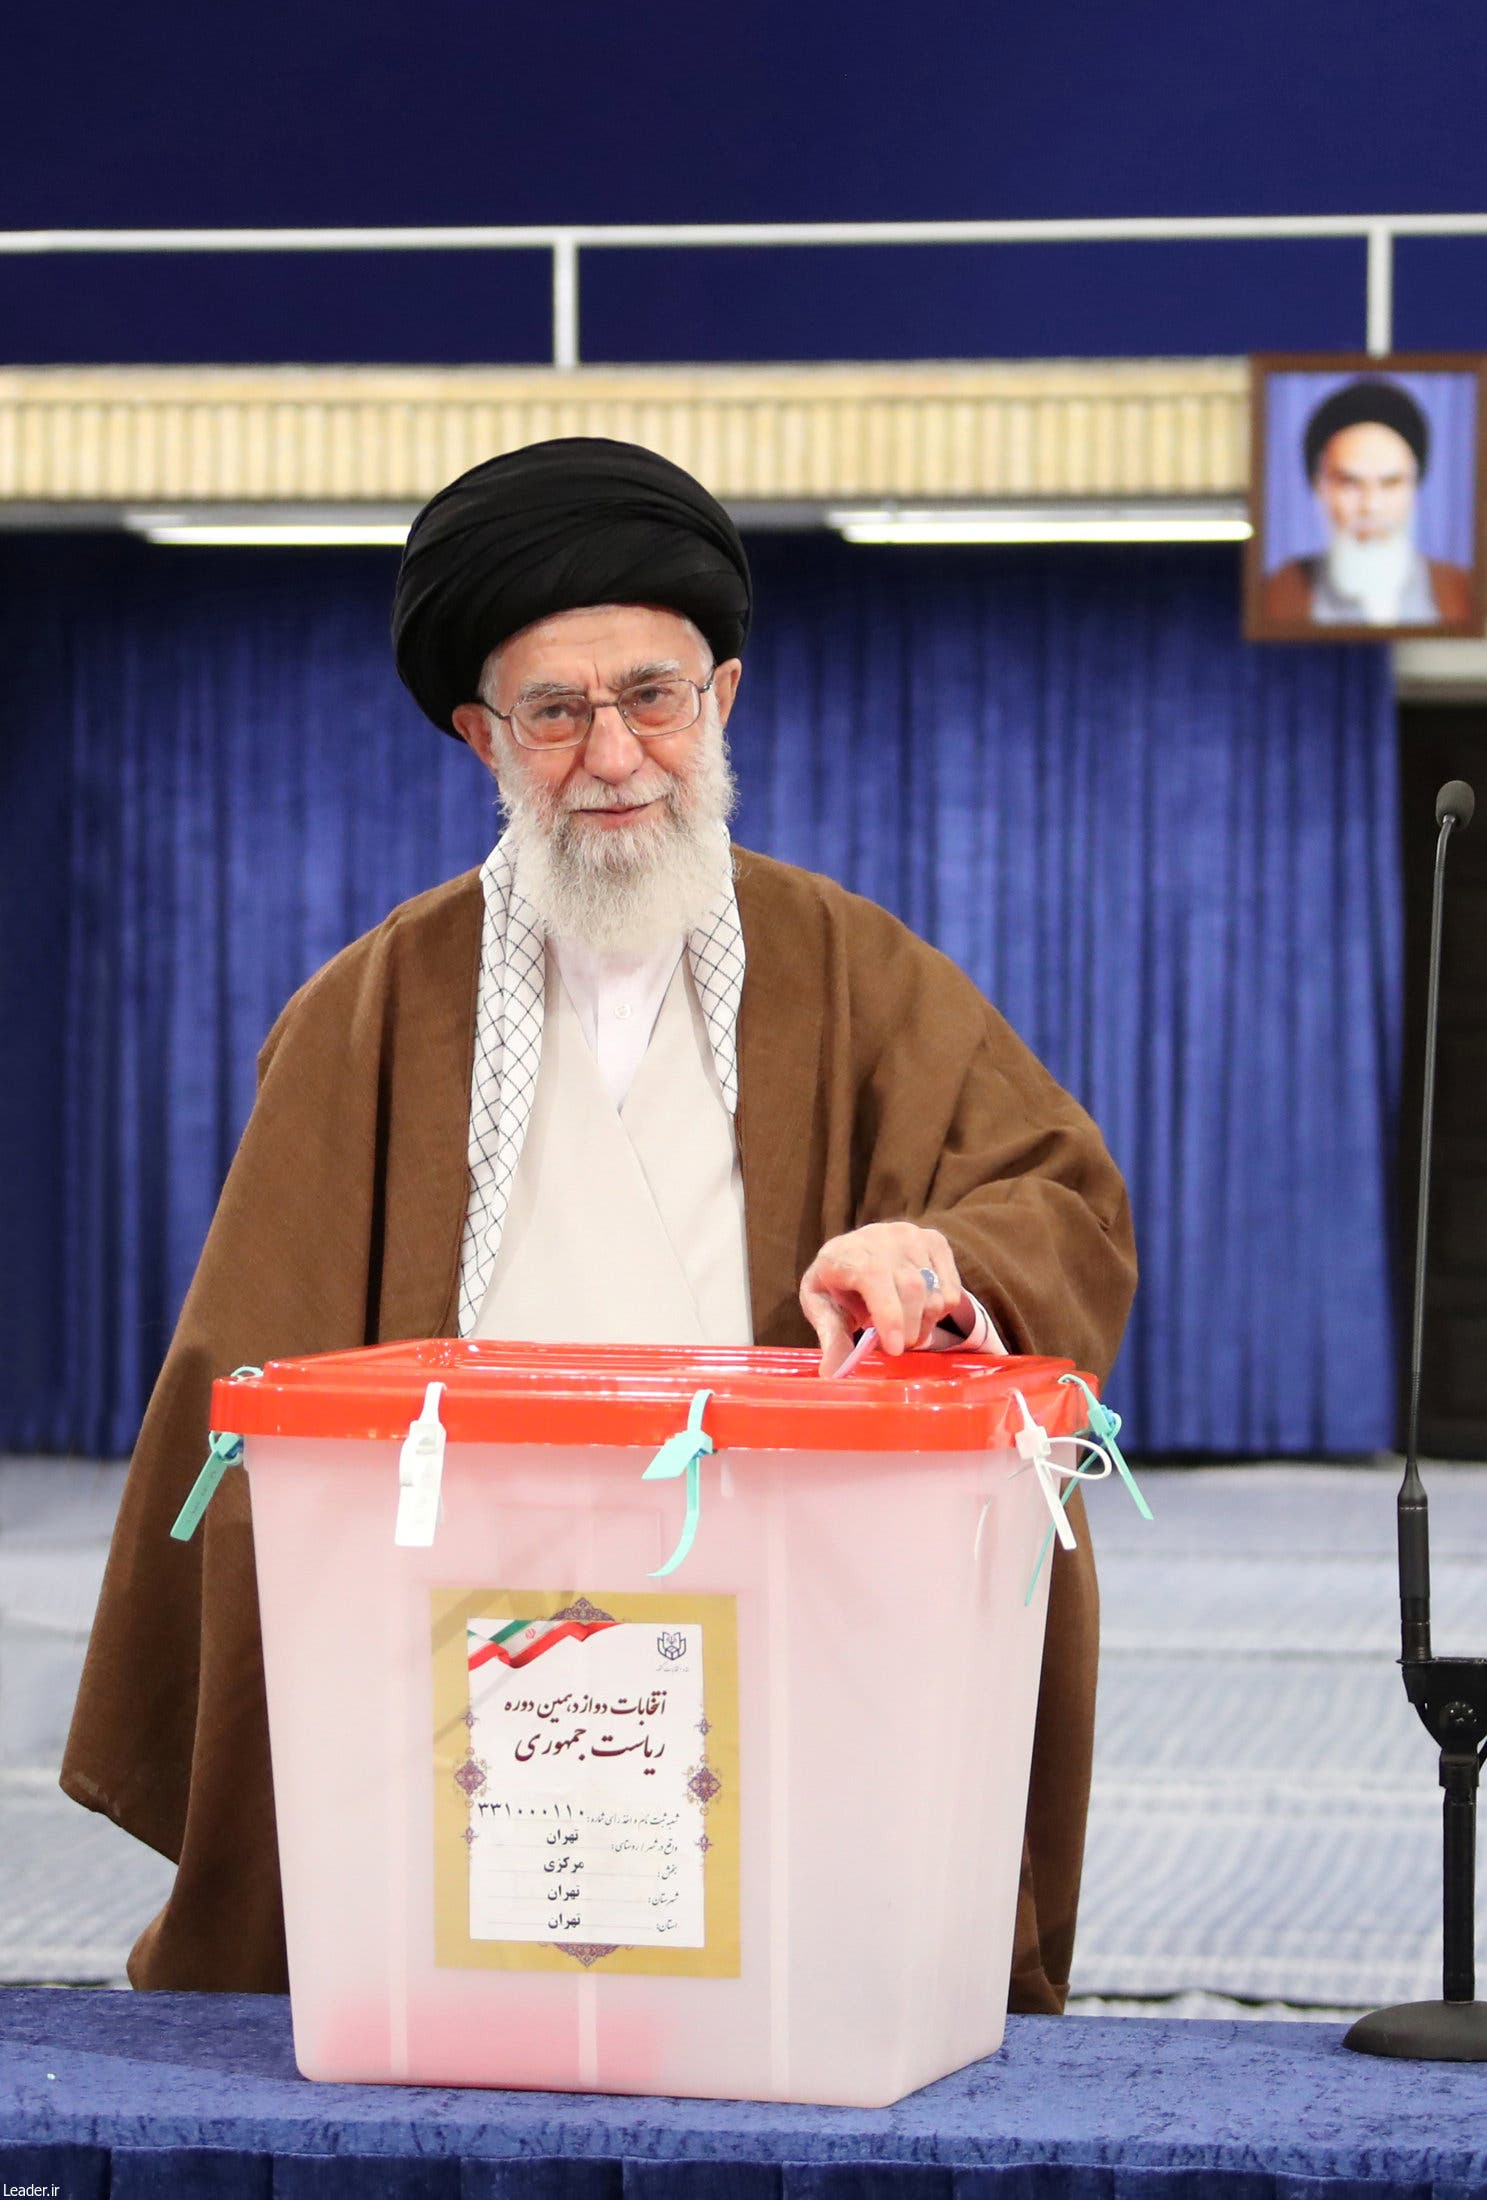 Iran's Supreme Leader Ayatollah Ali Khamenei casts his vote during the presidential election in Tehran, Iran, May 19, 2017. (Reuters)